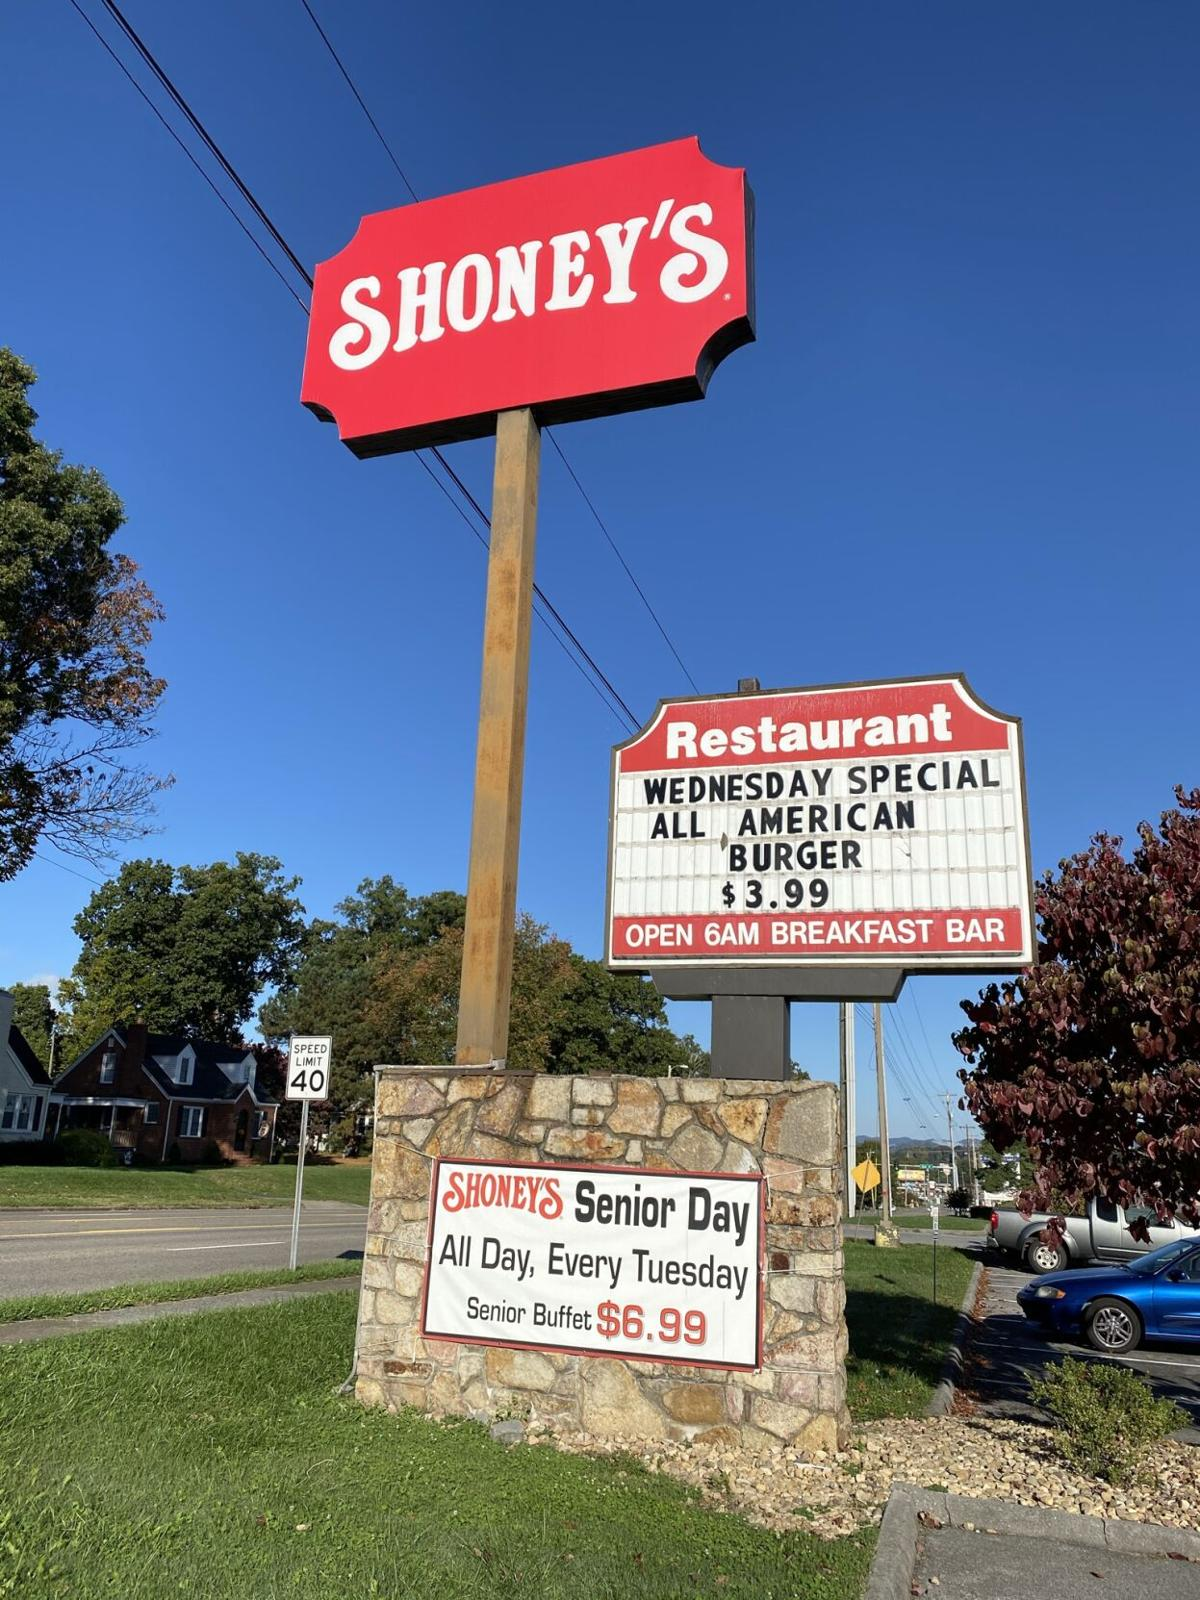 Shoney's in Kingsport